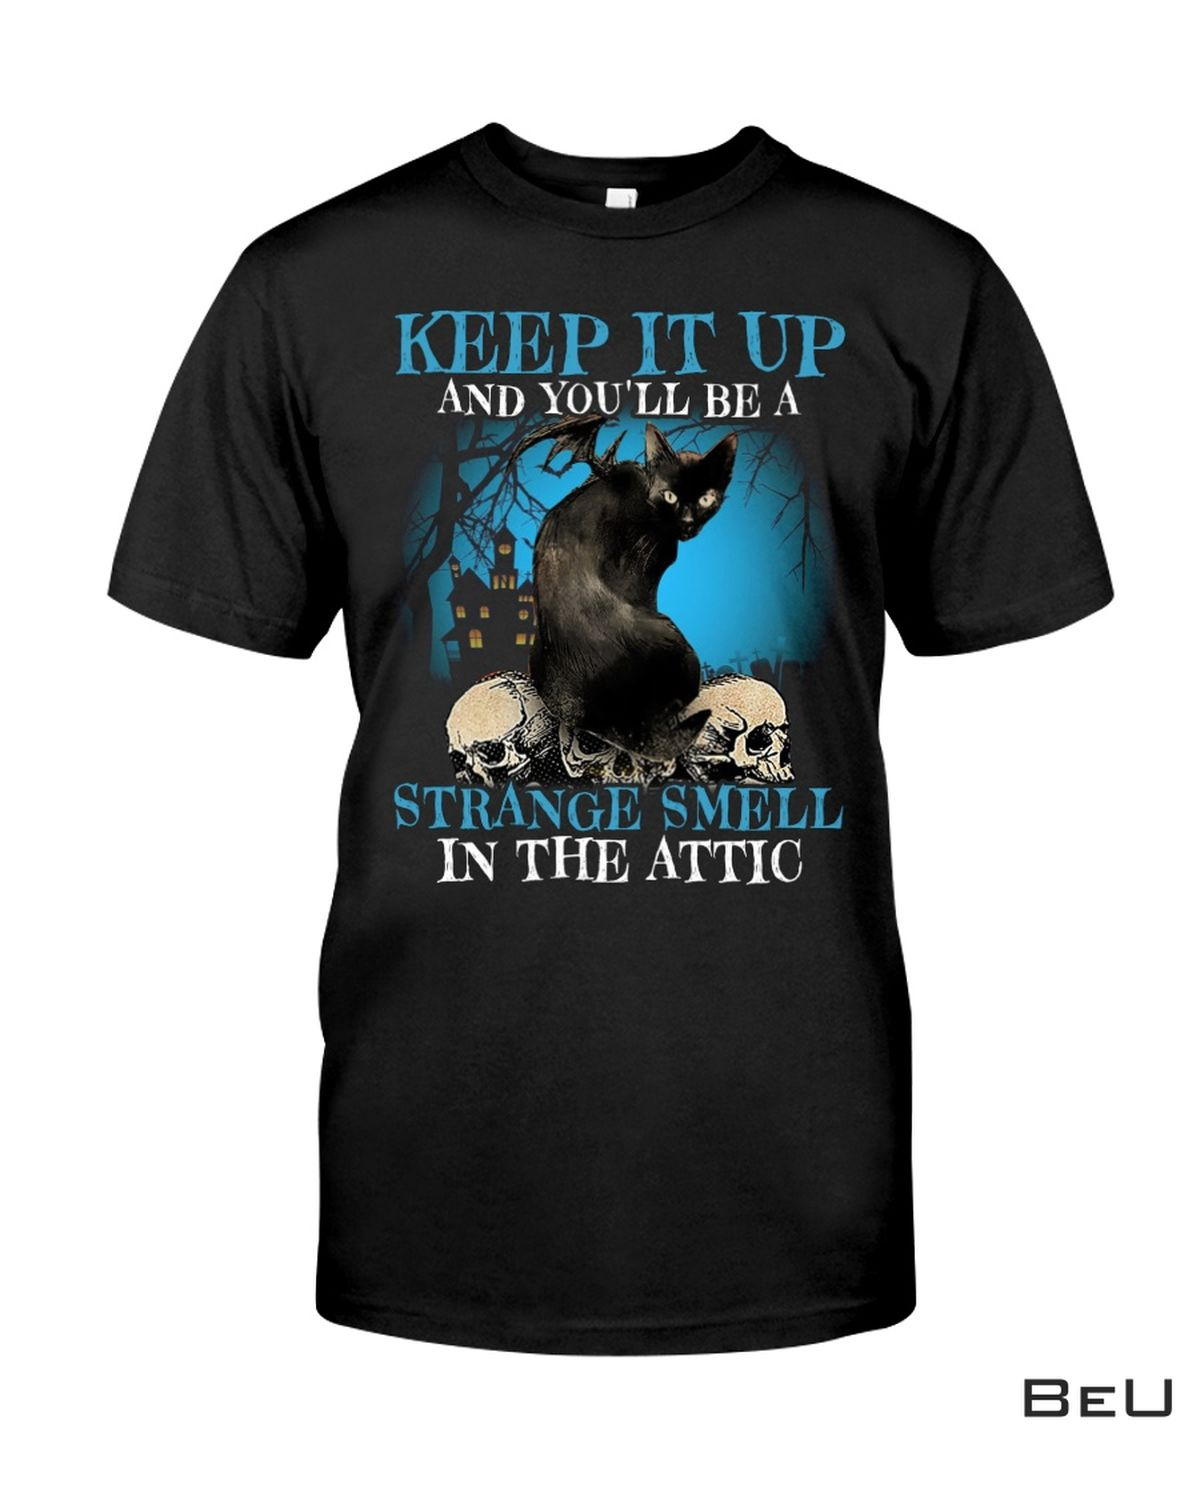 Keep It Up And You'll Be A Strange Smell In The Attic Shirt, hoodie, tank top